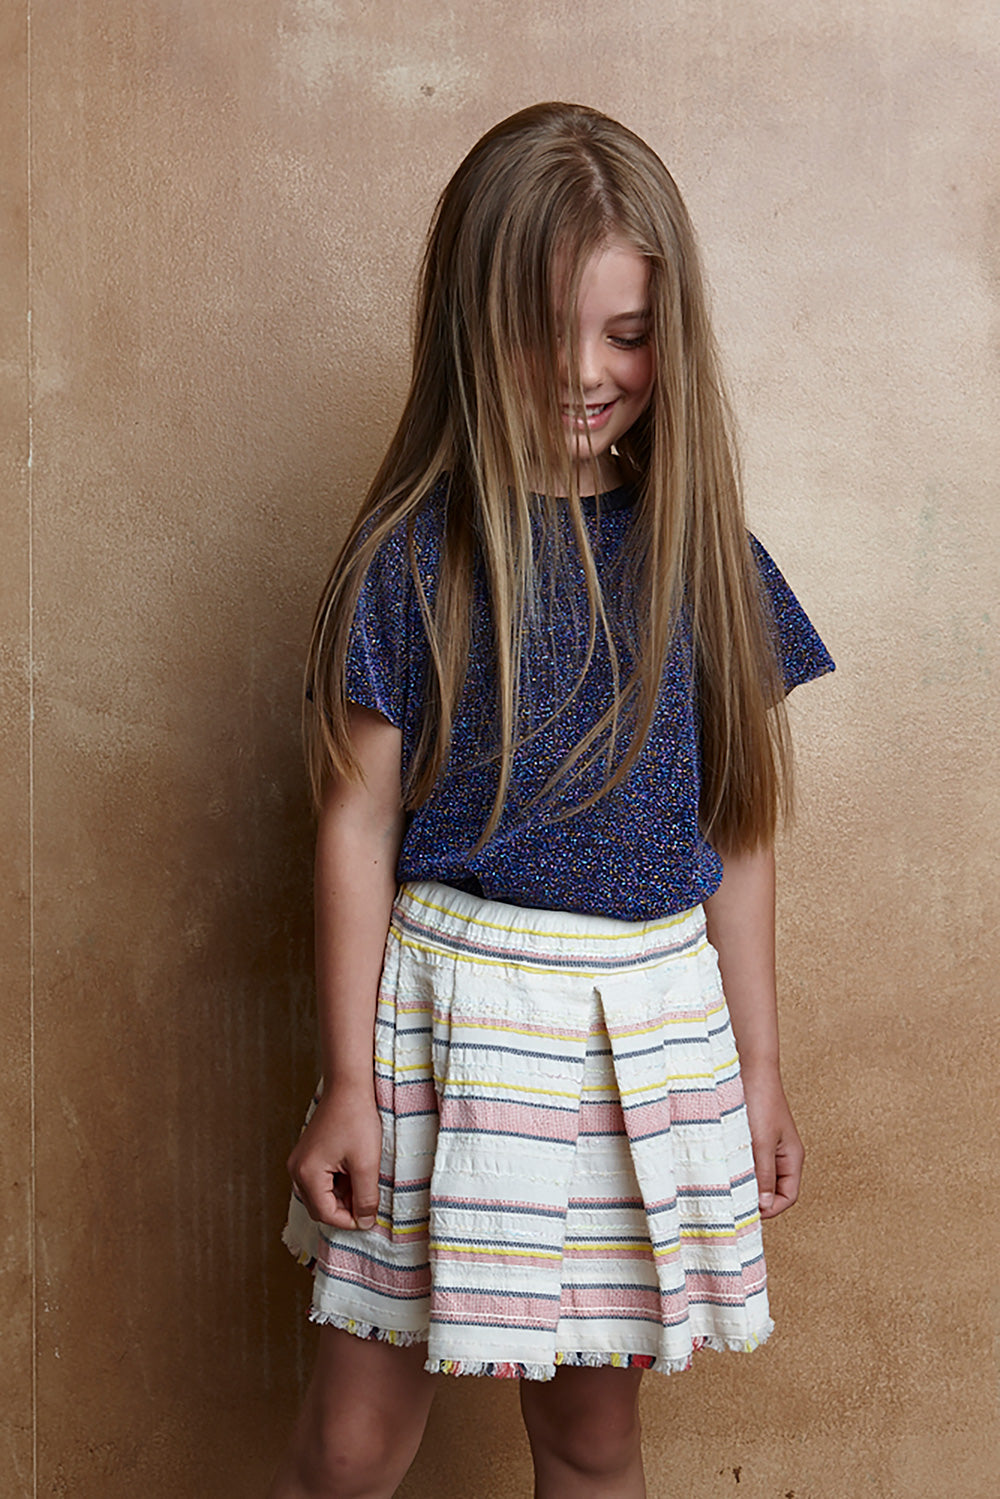 Lookbook kids 15